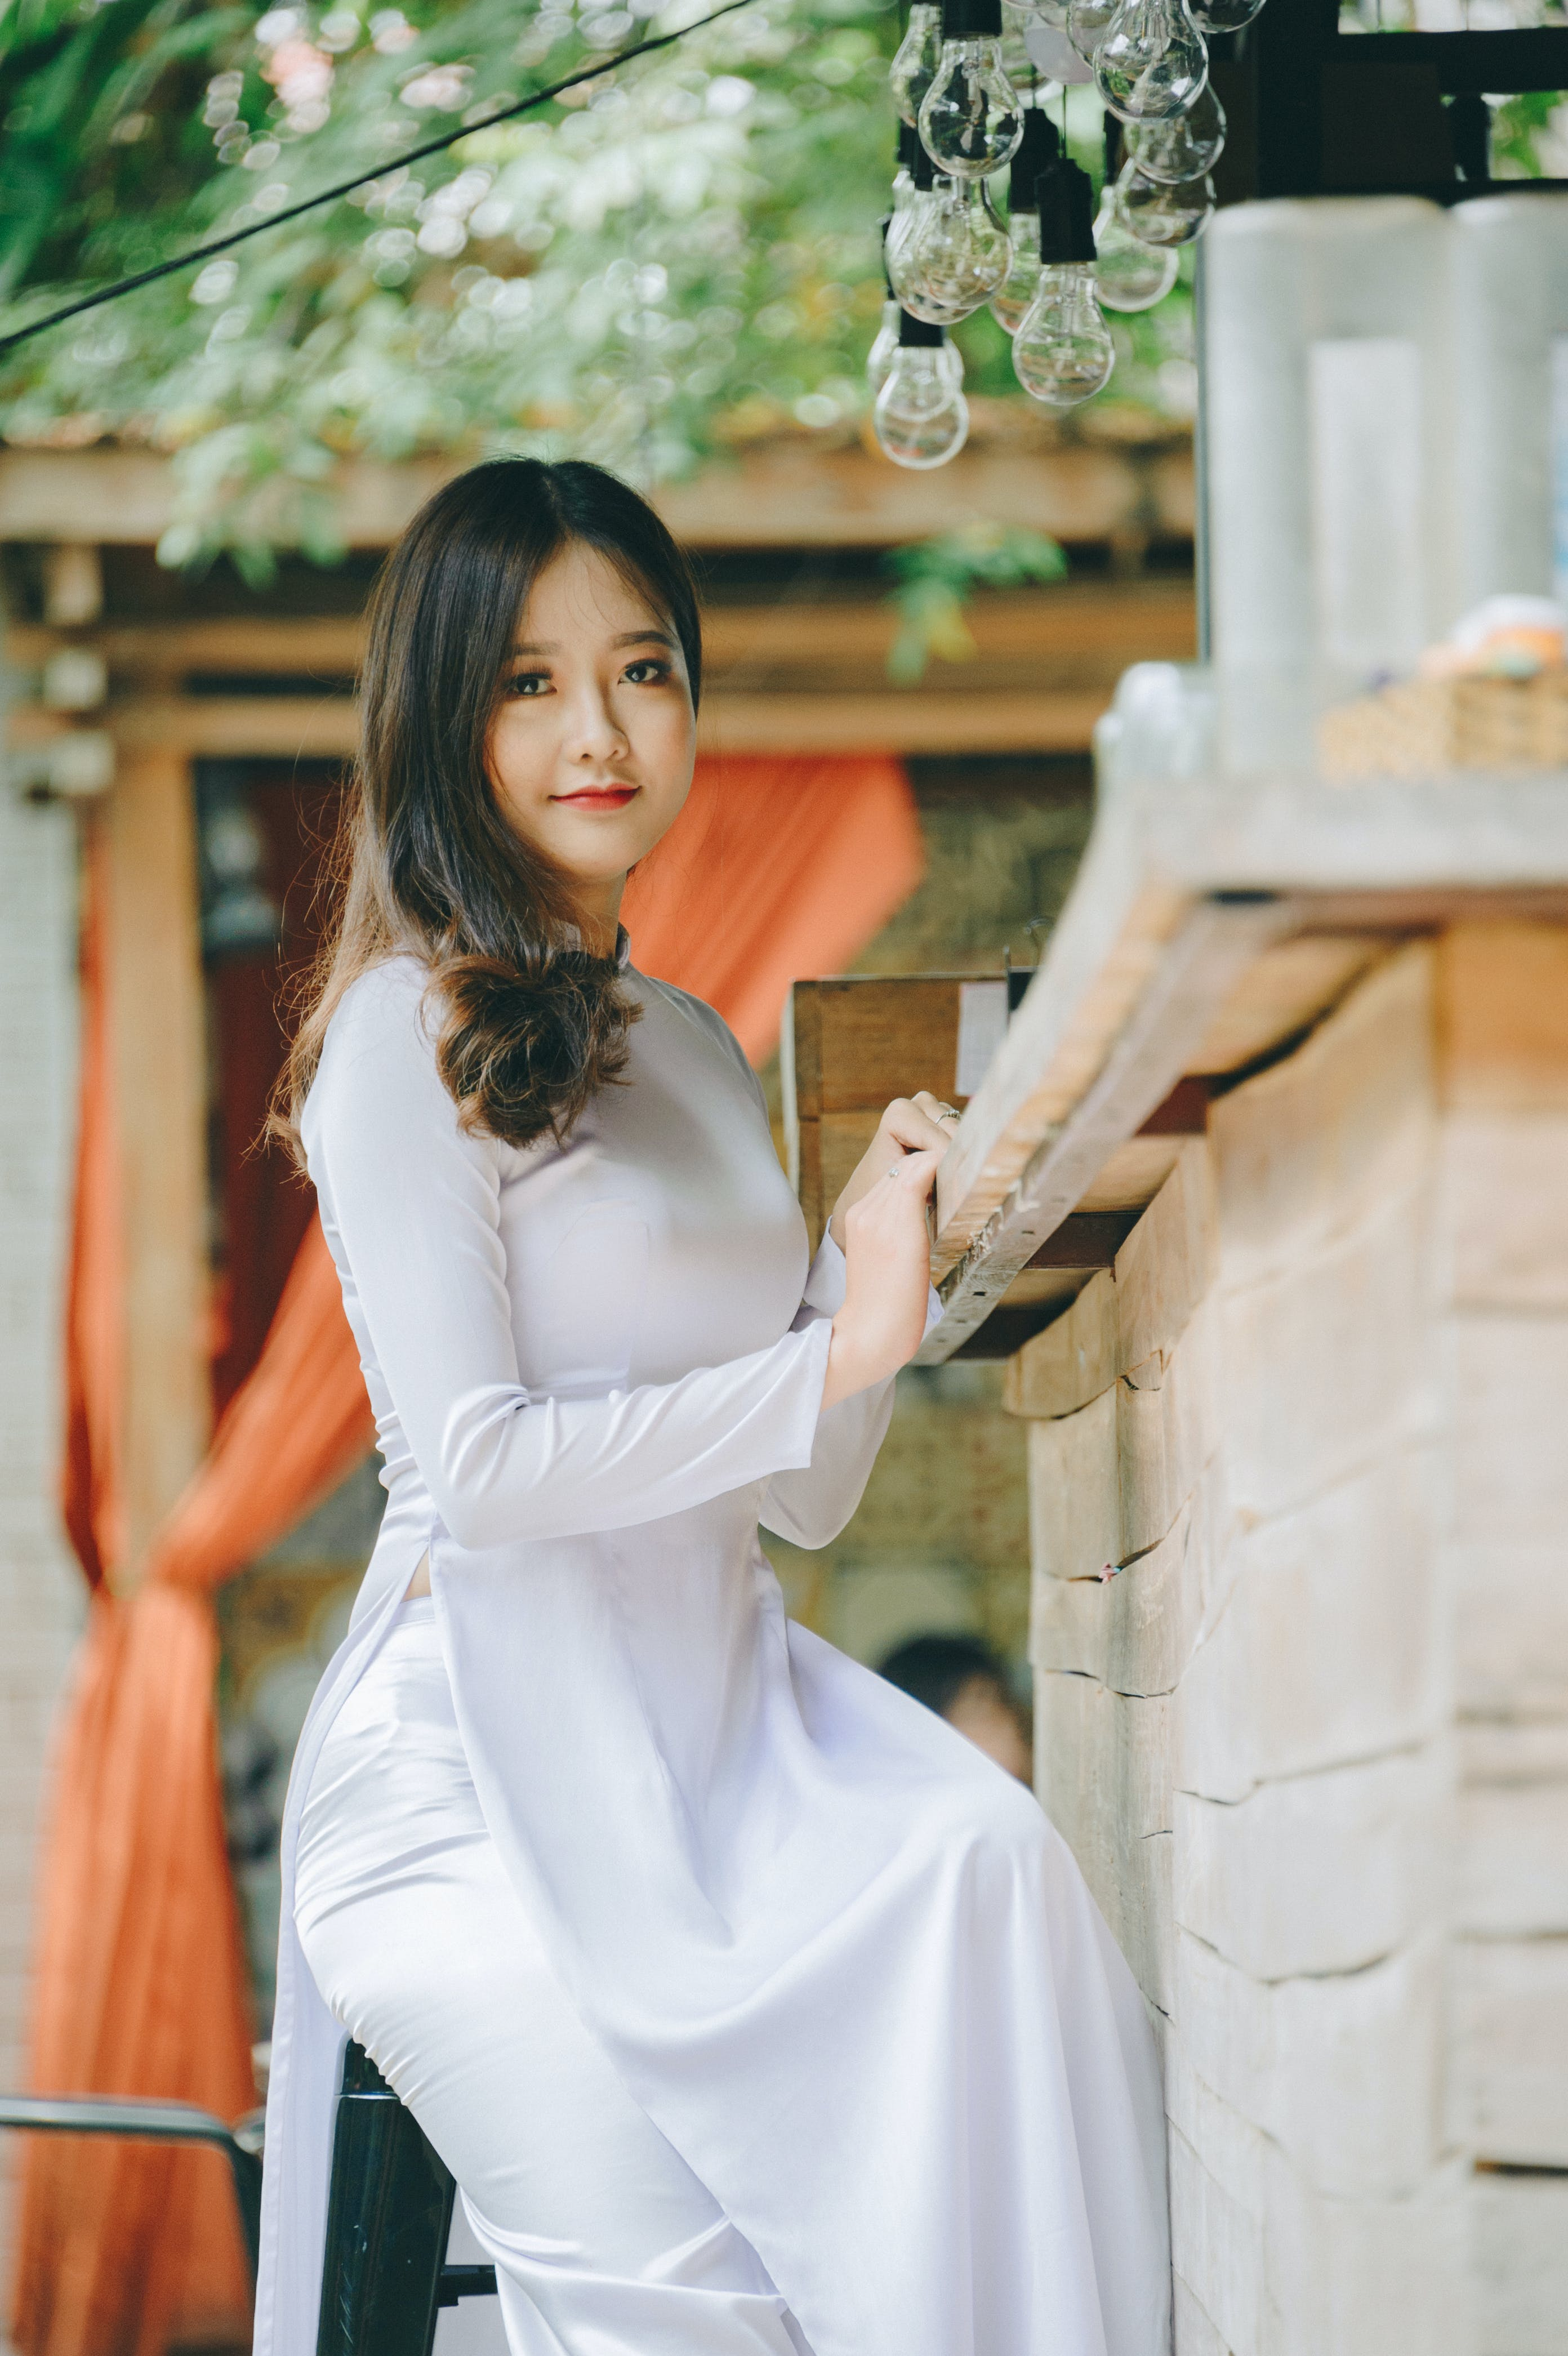 Woman Wearing White Dress Sitting on White Chair Smiling While Taking Picture